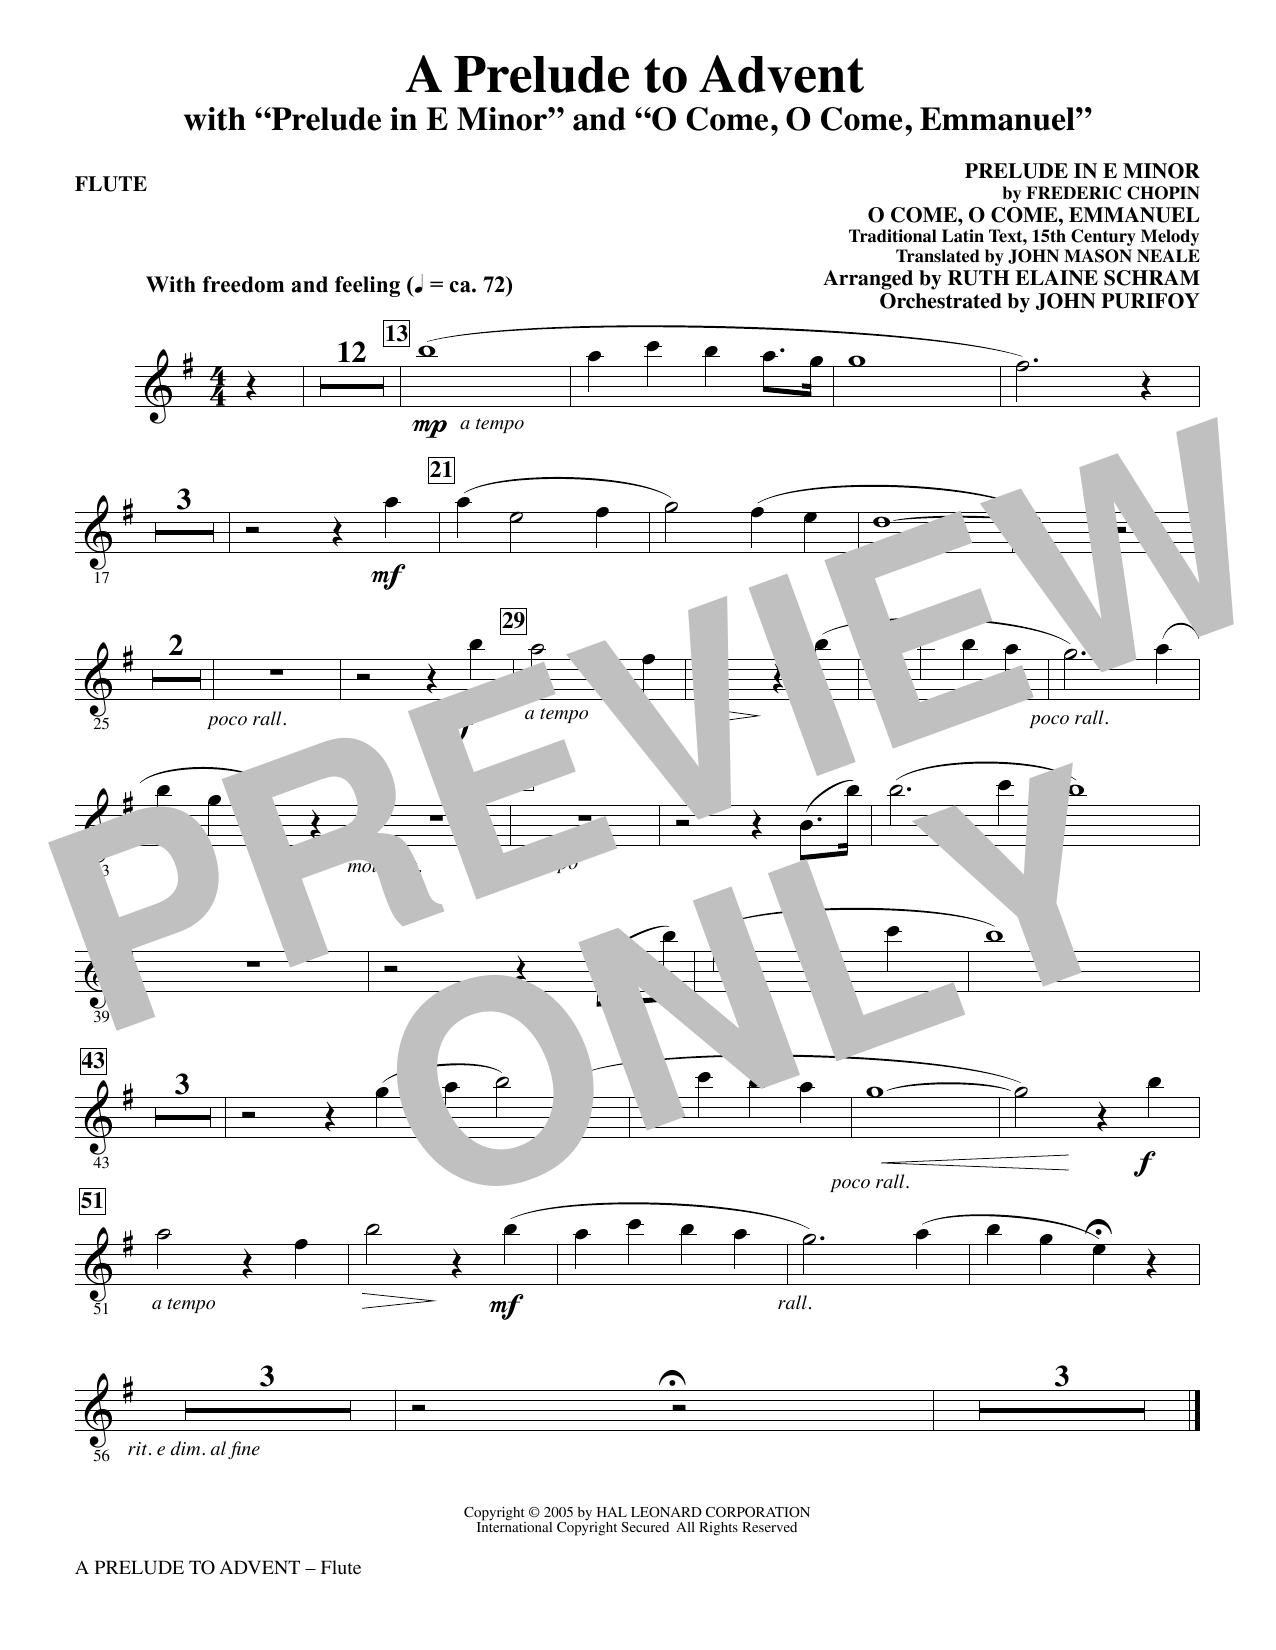 A Prelude To Advent (with Prelude In E Minor and O Come, O Come, Emmanuel) - Flute Sheet Music